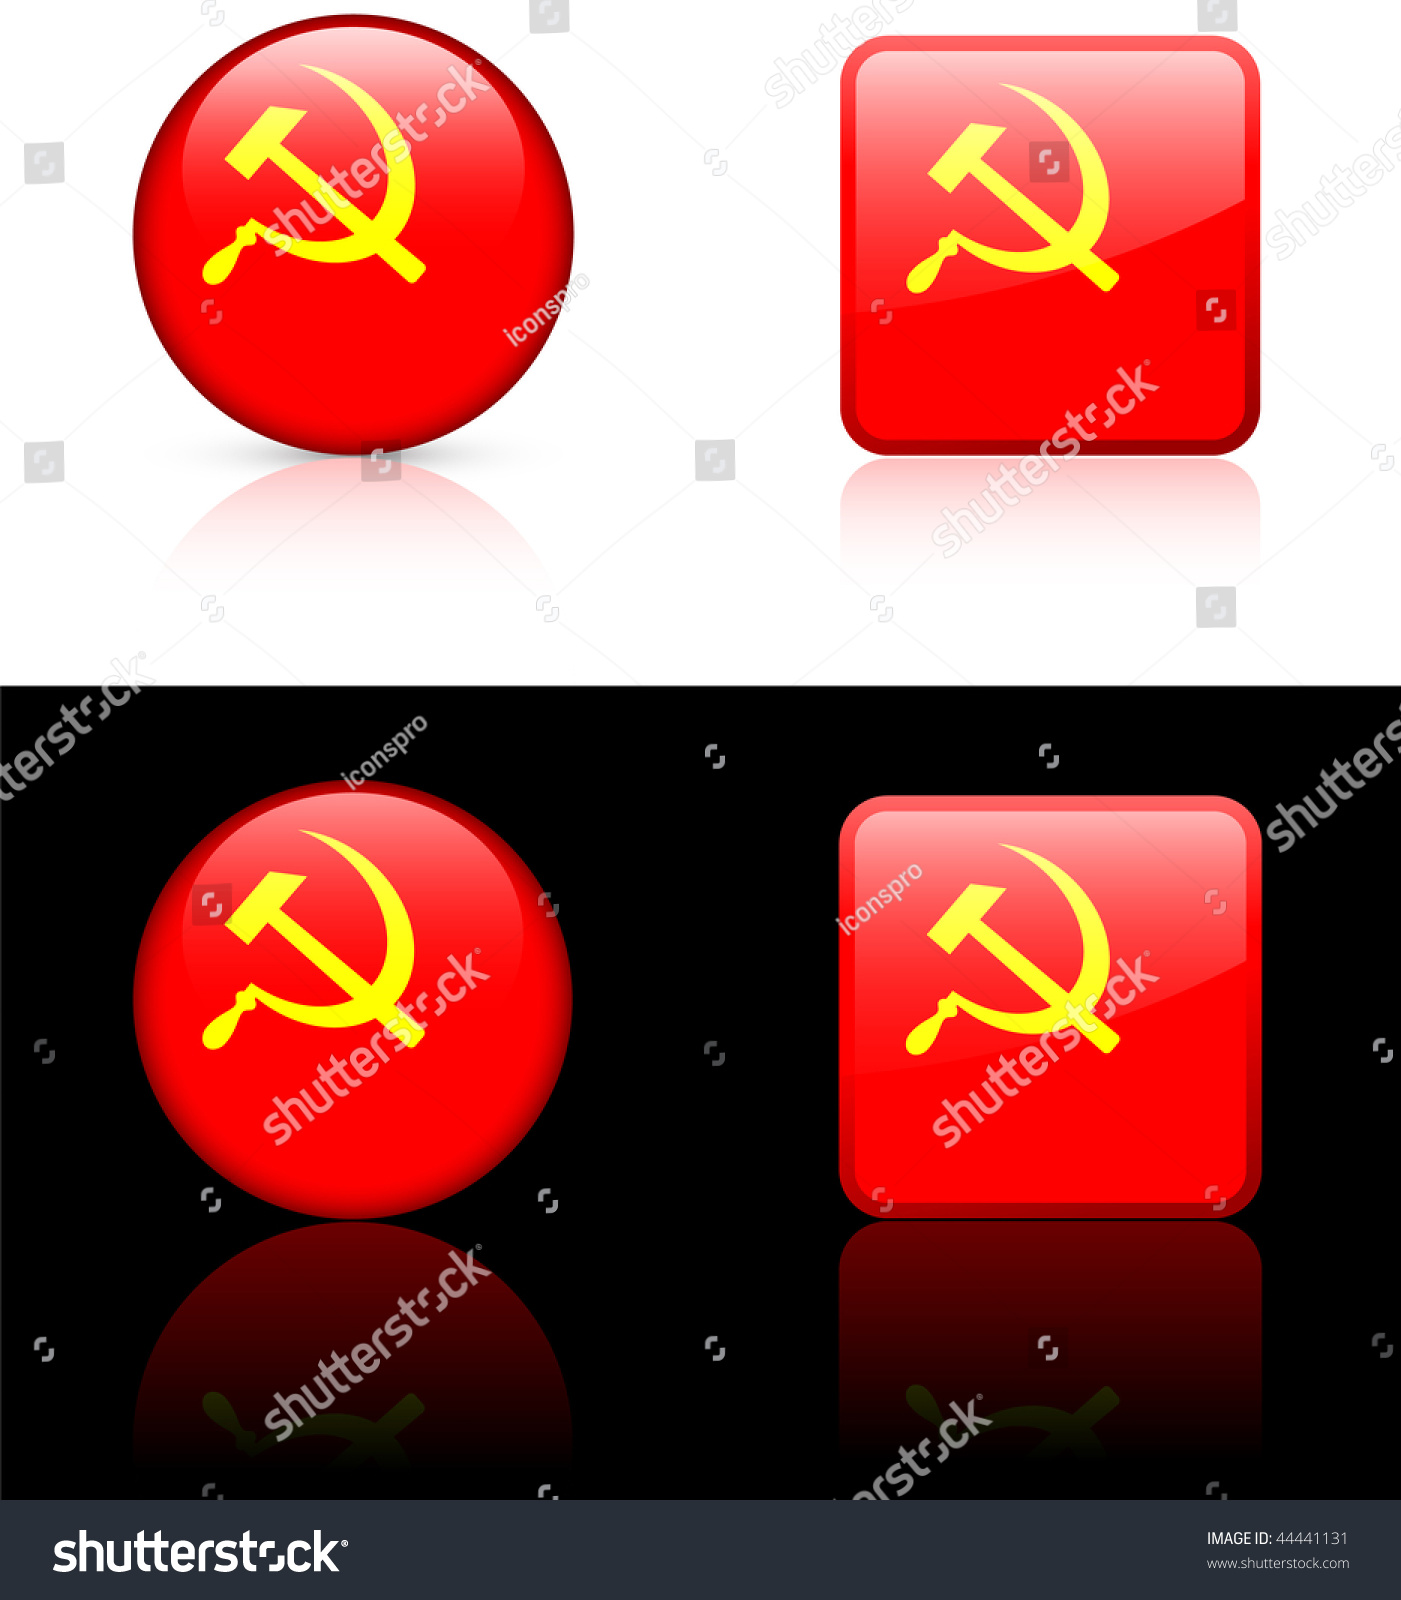 Ussr Flag Black And White Ussr (Cccp) Flag Butto...